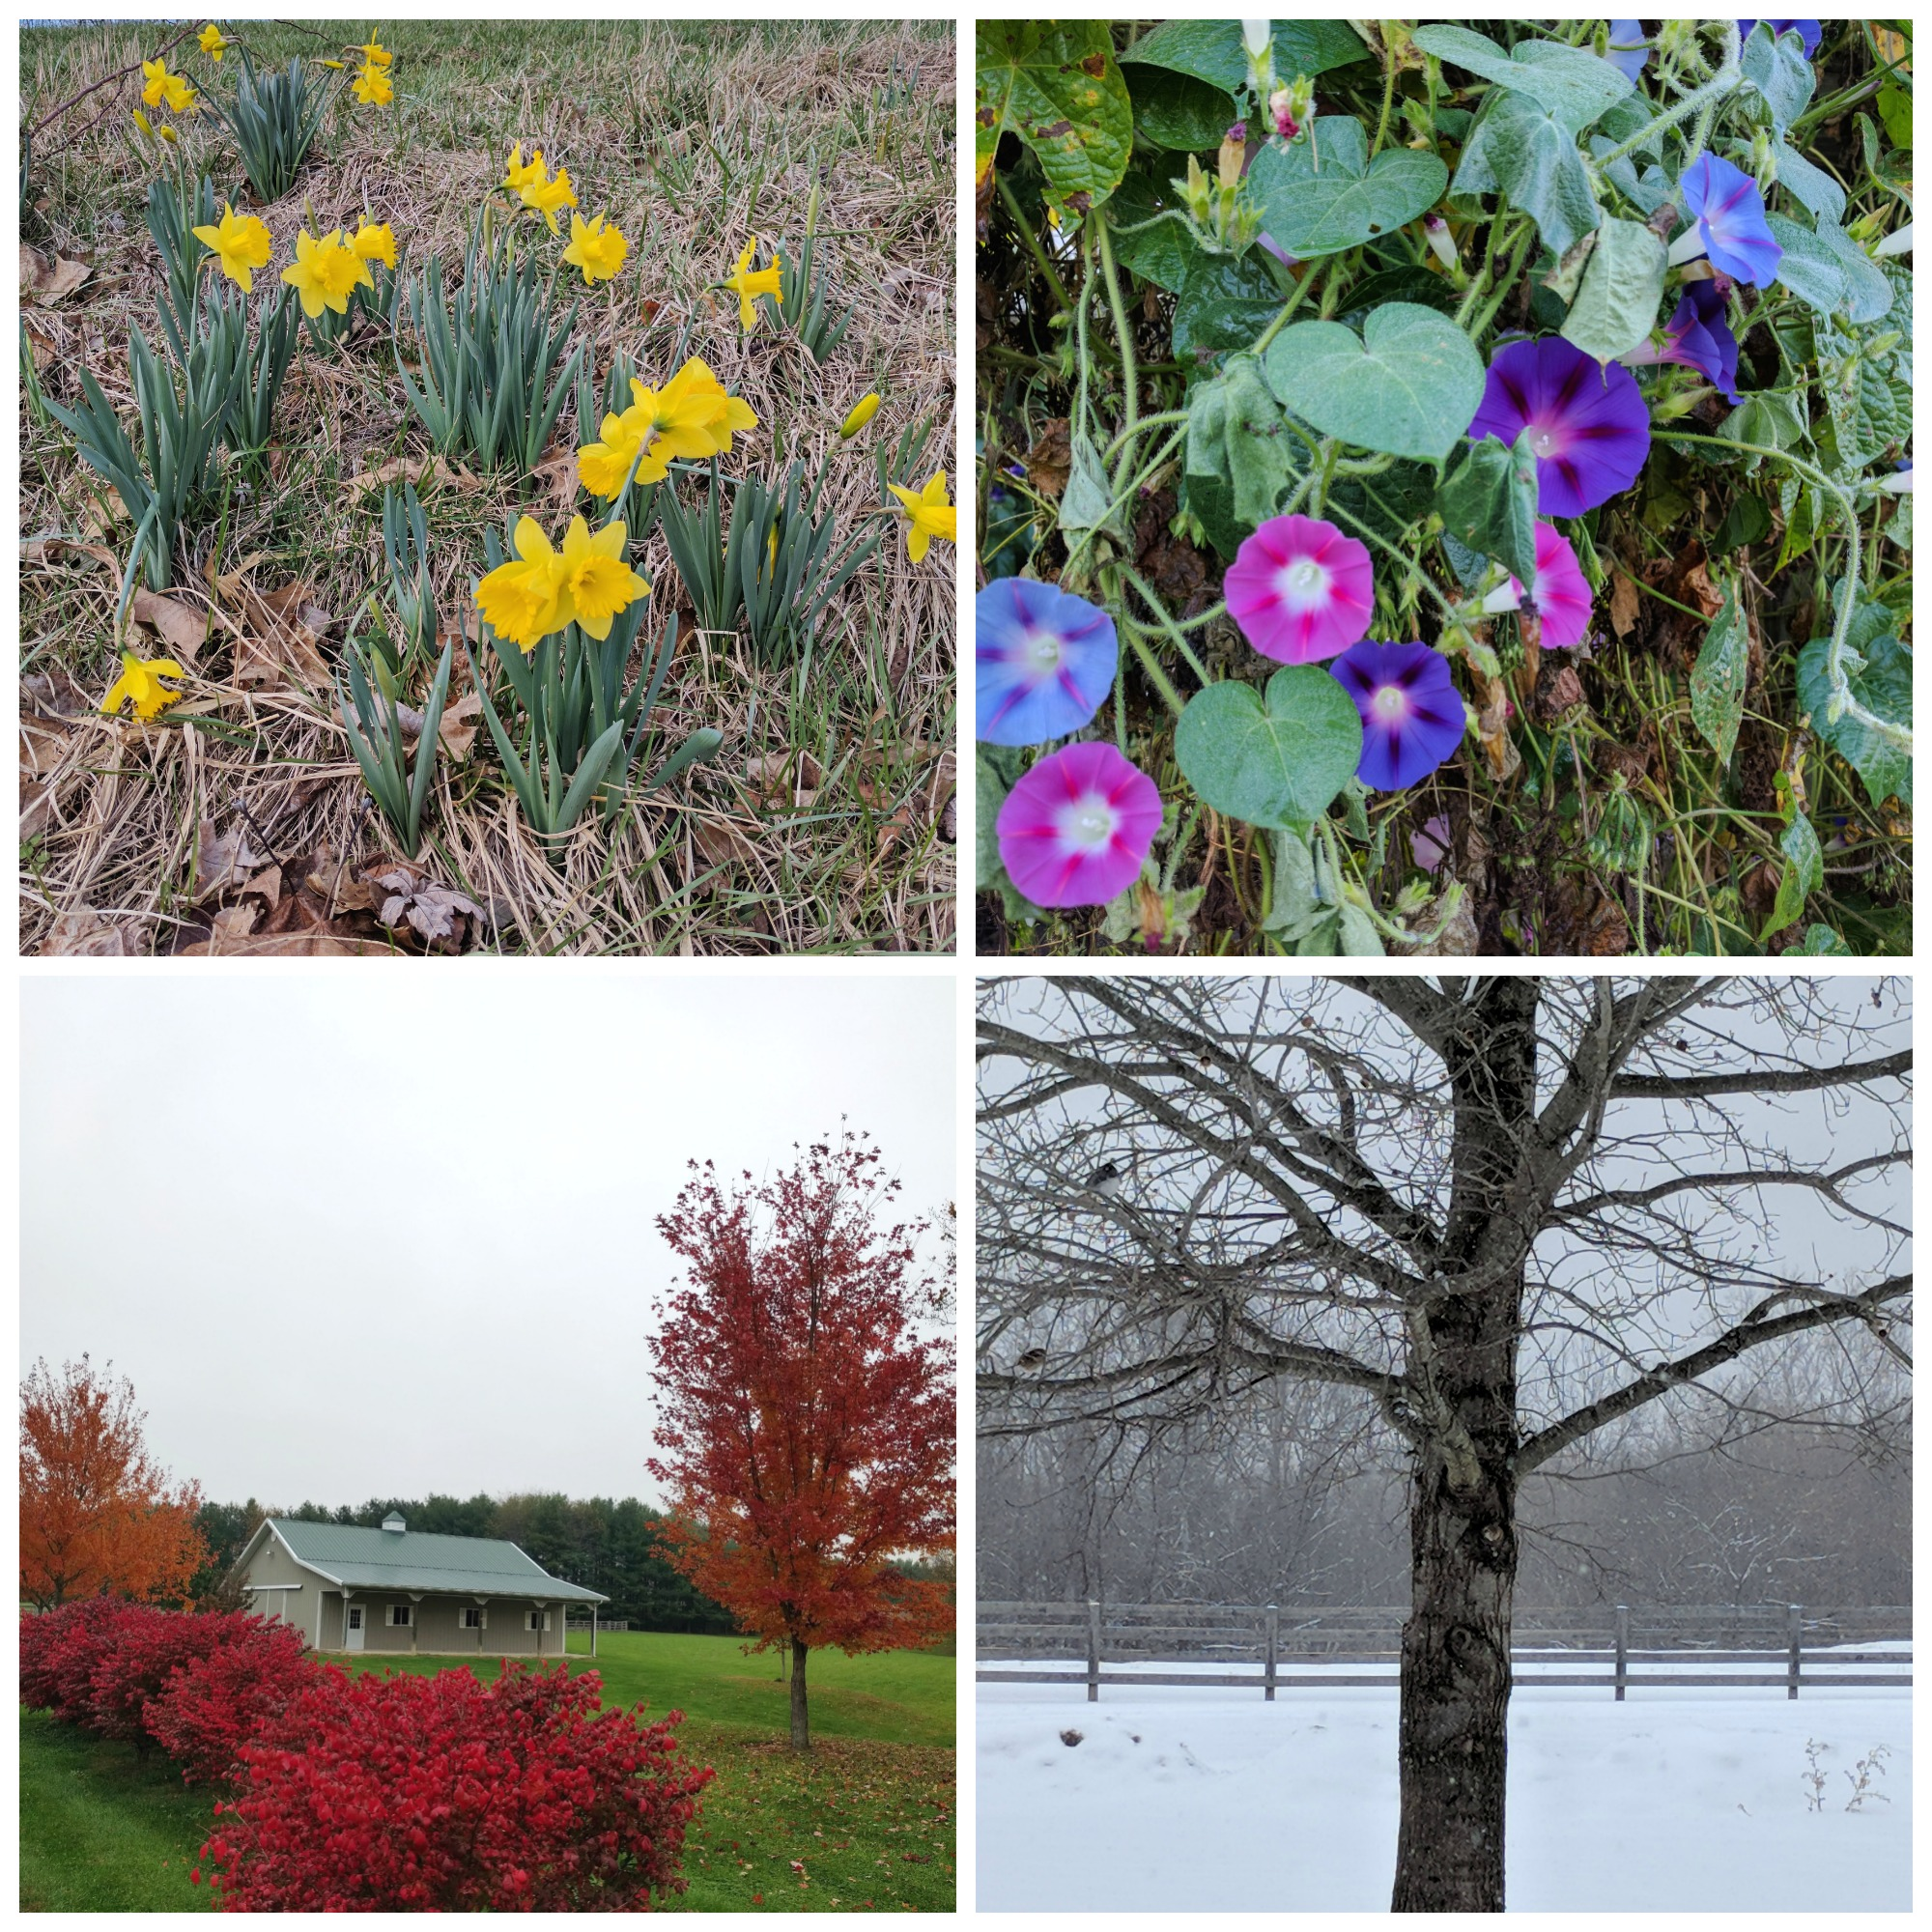 Four seasons at the roost. Spring Daffodils, Summer Morning Glories, Fall Leaves, and Snow. All of it is perfect.